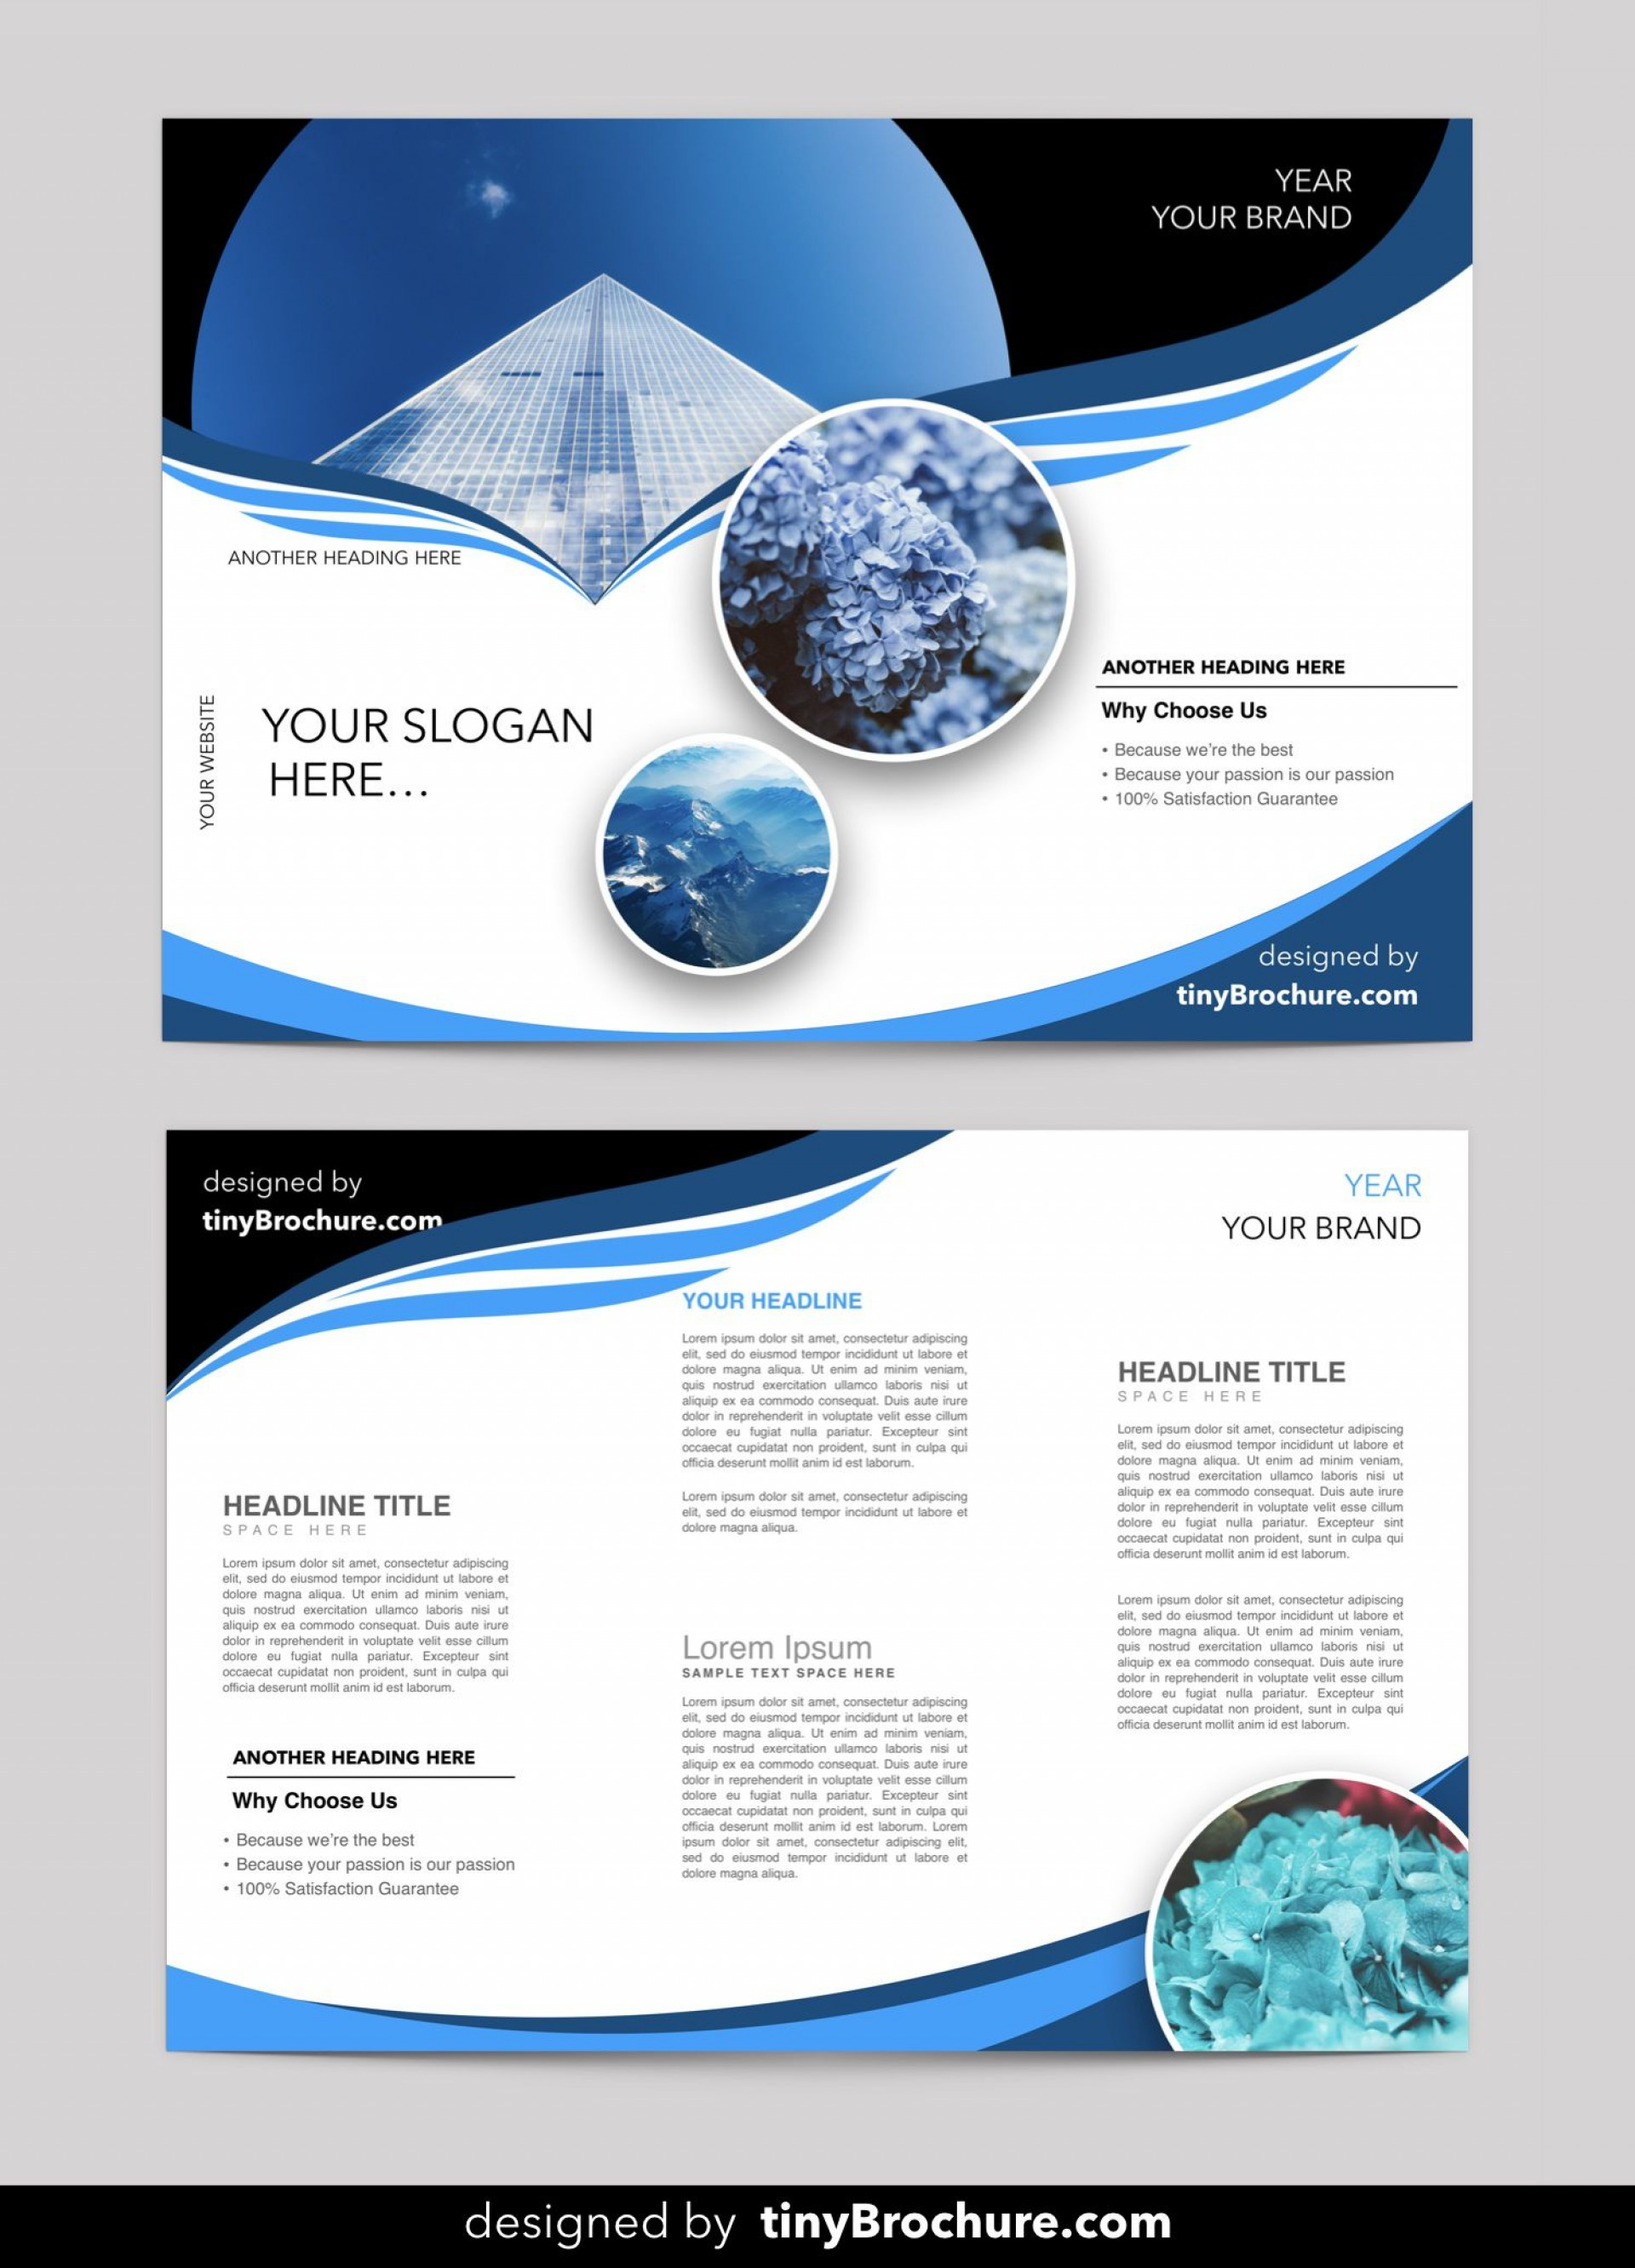 003 Phenomenal Busines Flyer Template Free Download Concept  Psd Design1920